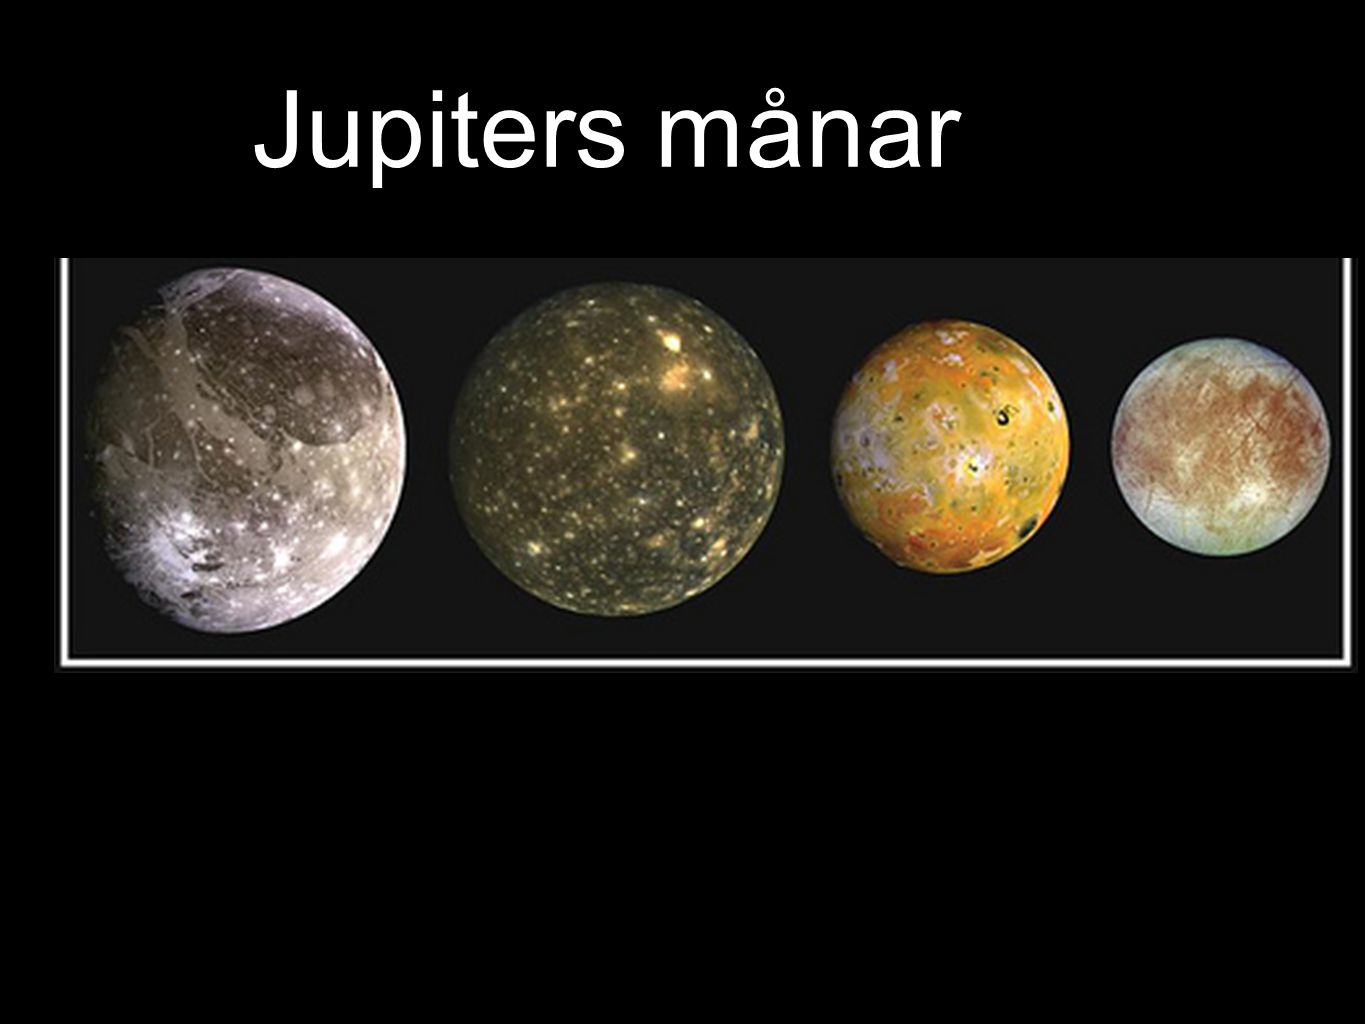 Jupiters månar